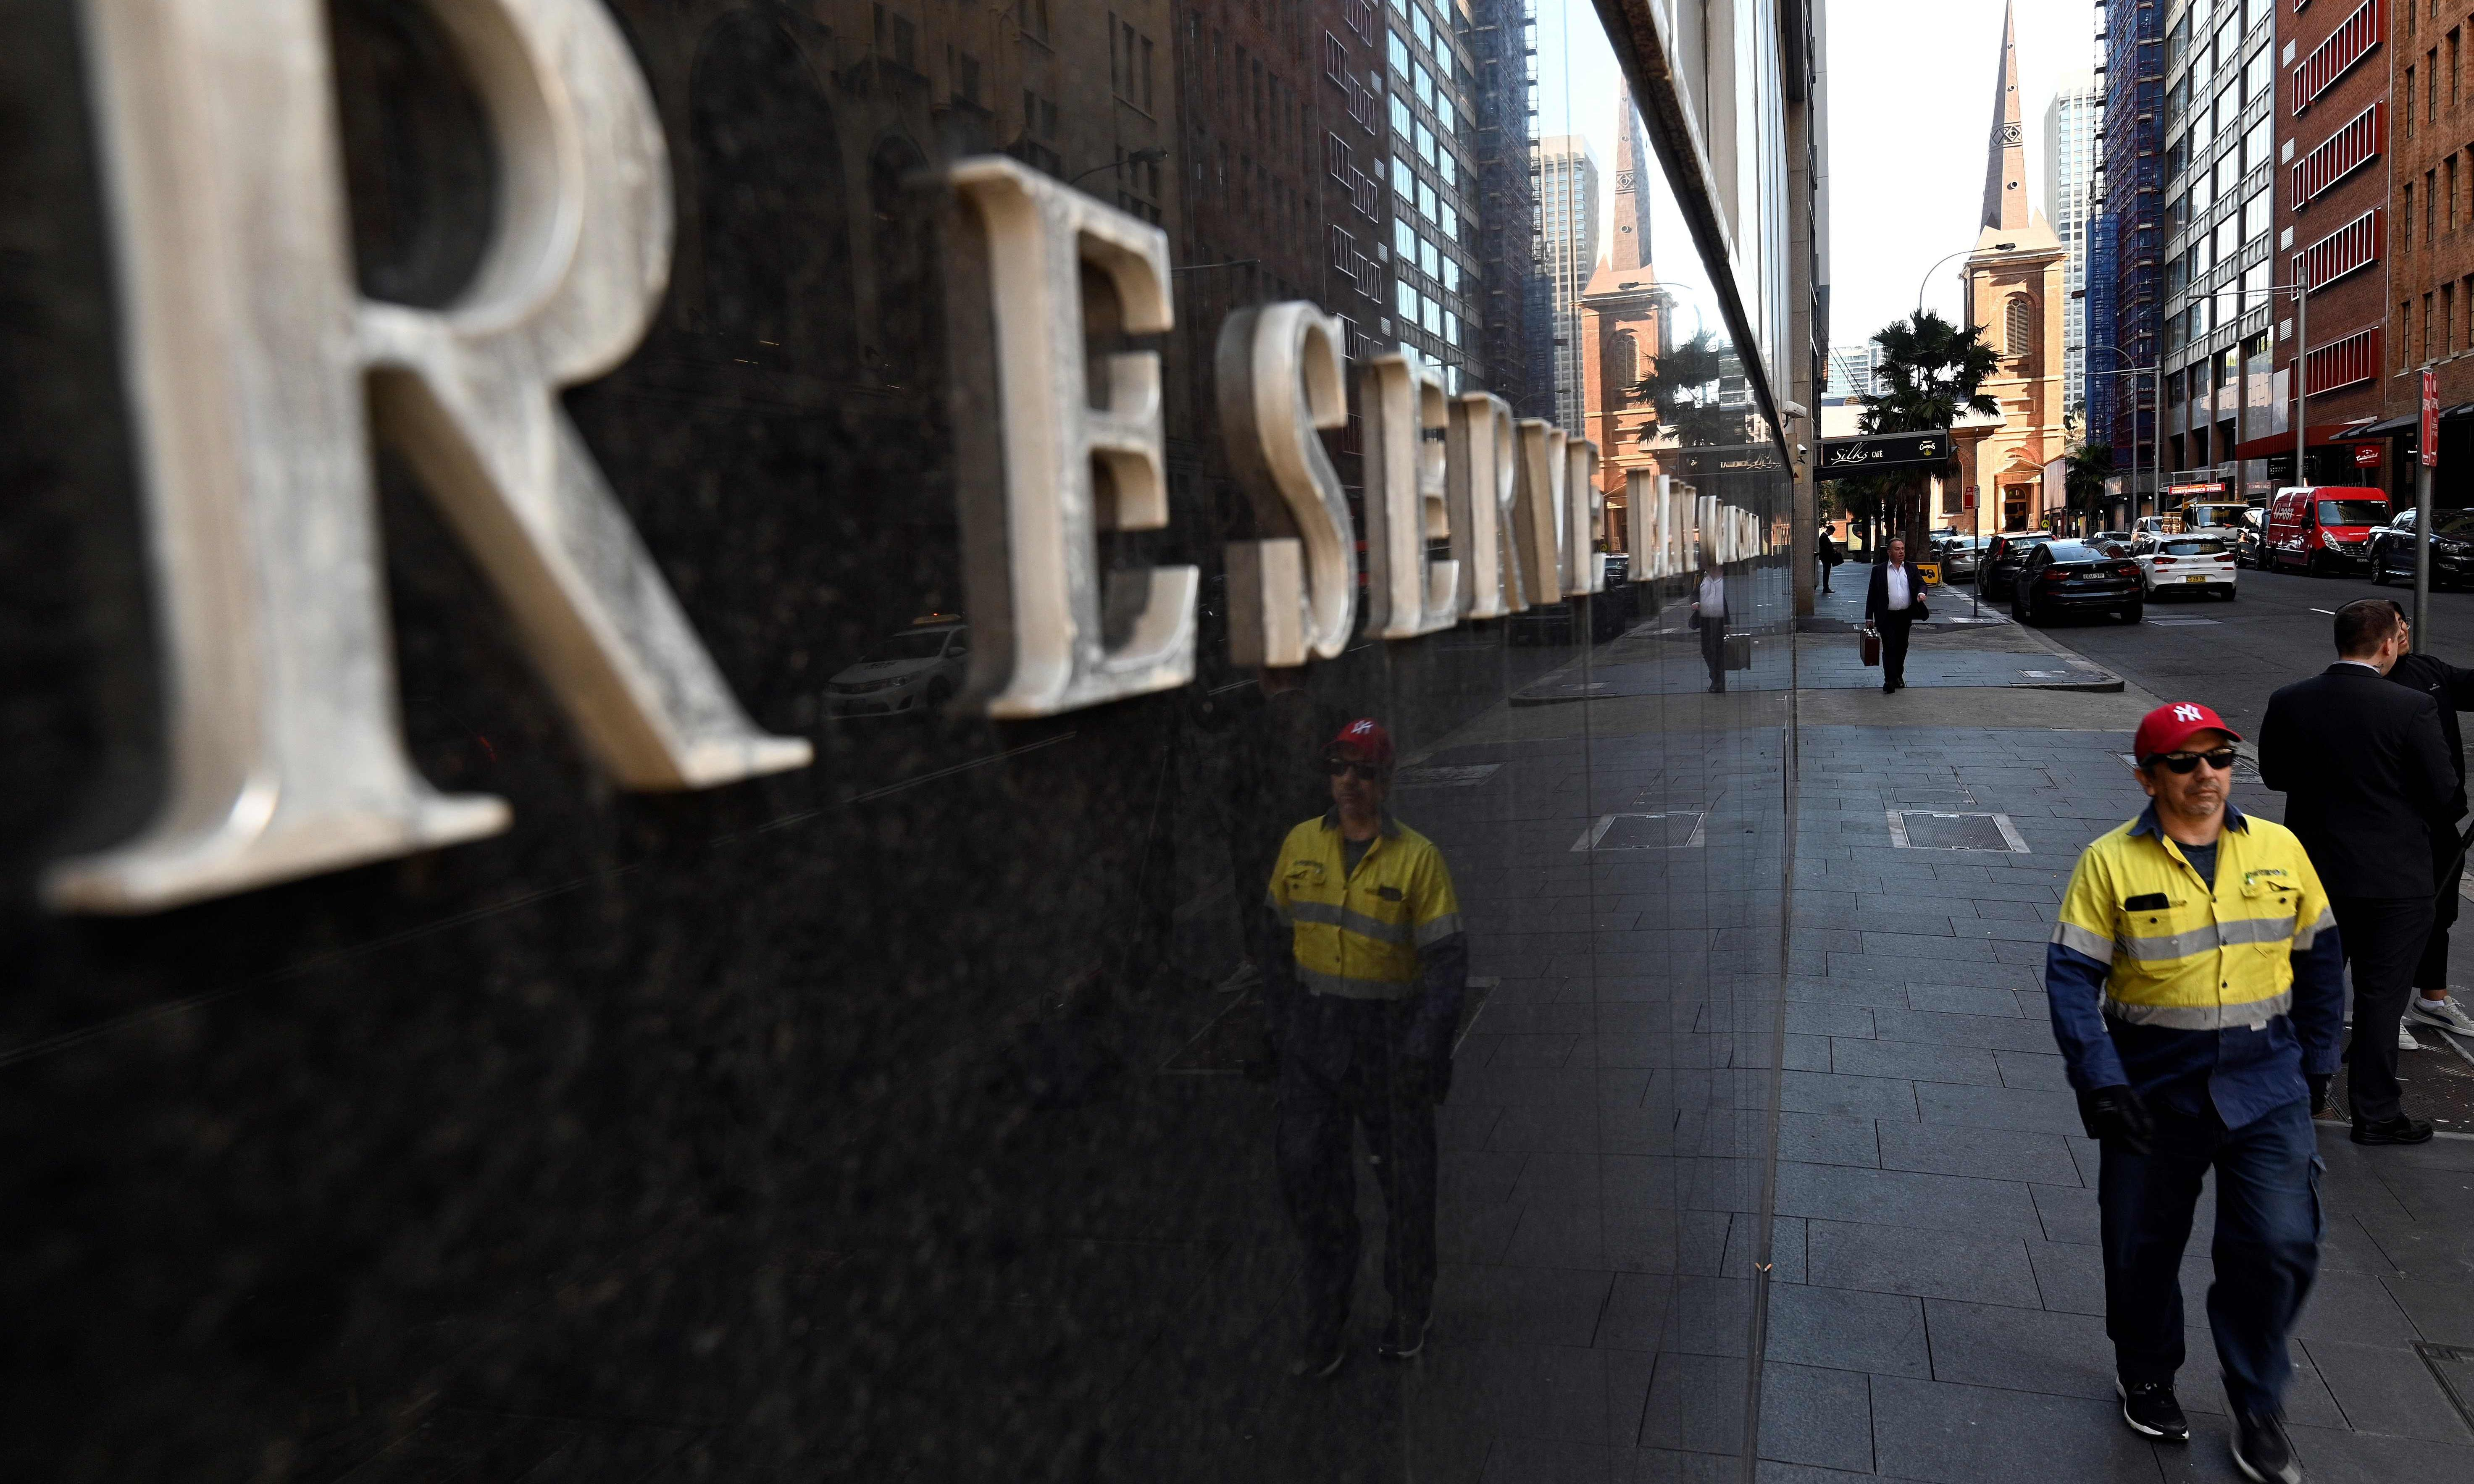 Reserve Bank warns climate change posing increasing risk to financial stability